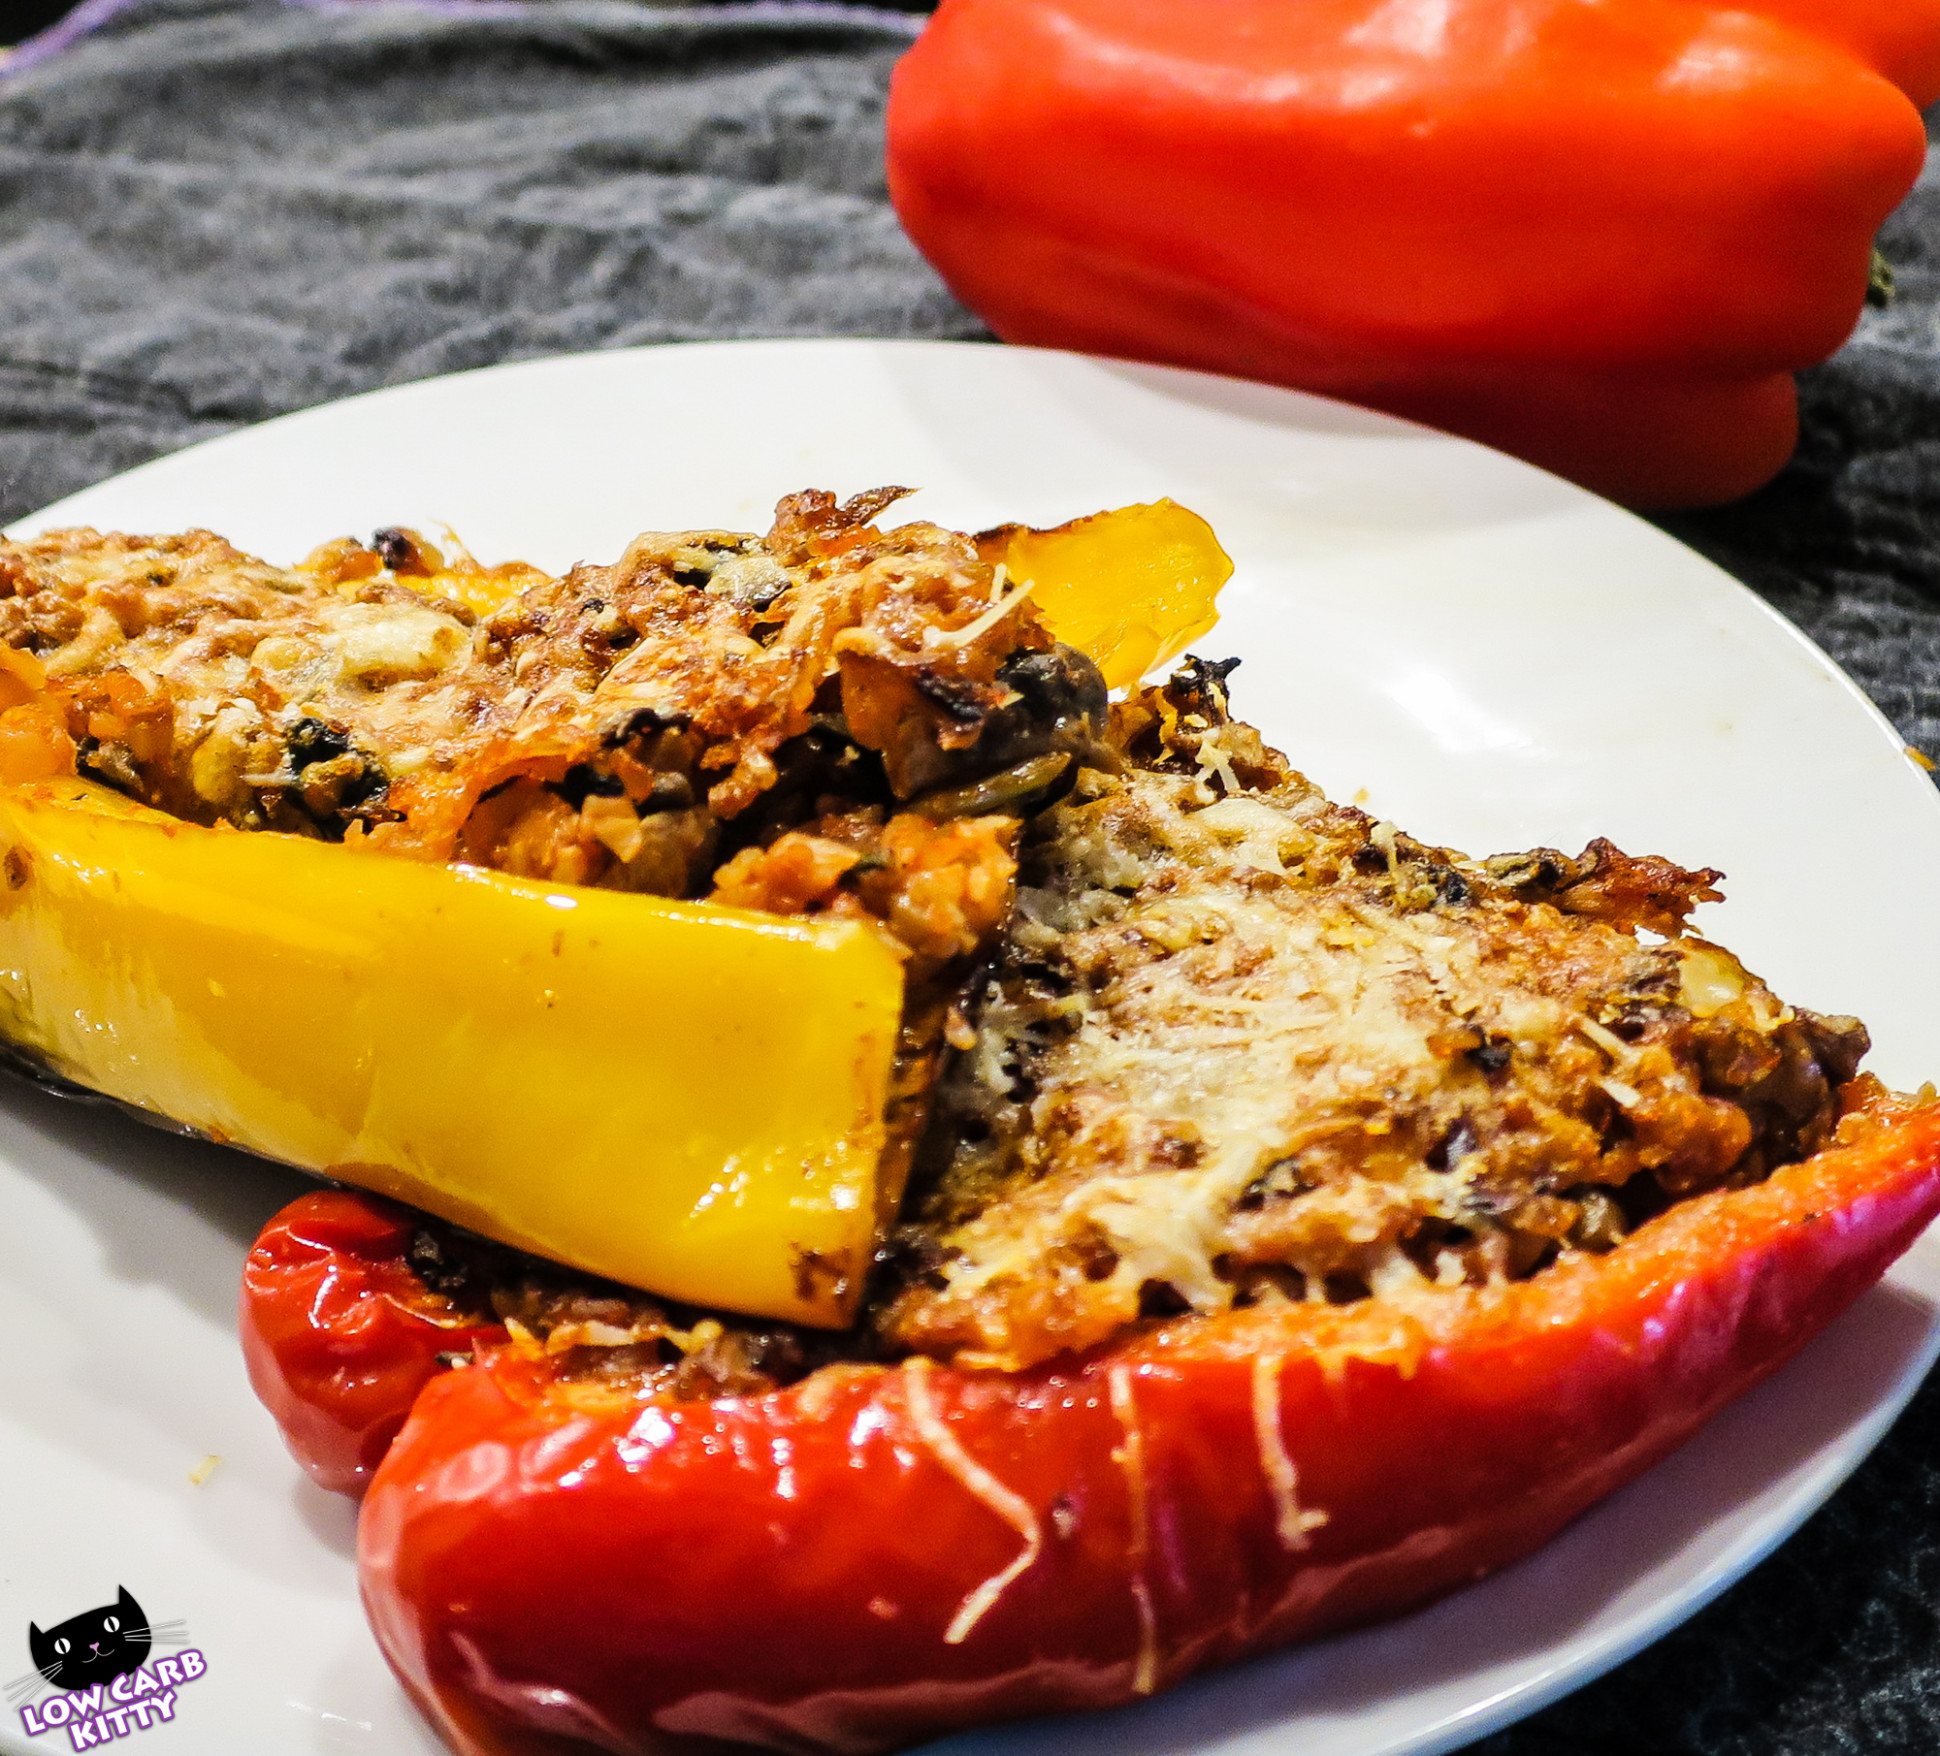 Low carb vegetarian stuffed peppers - low carb and vegetarian recipes